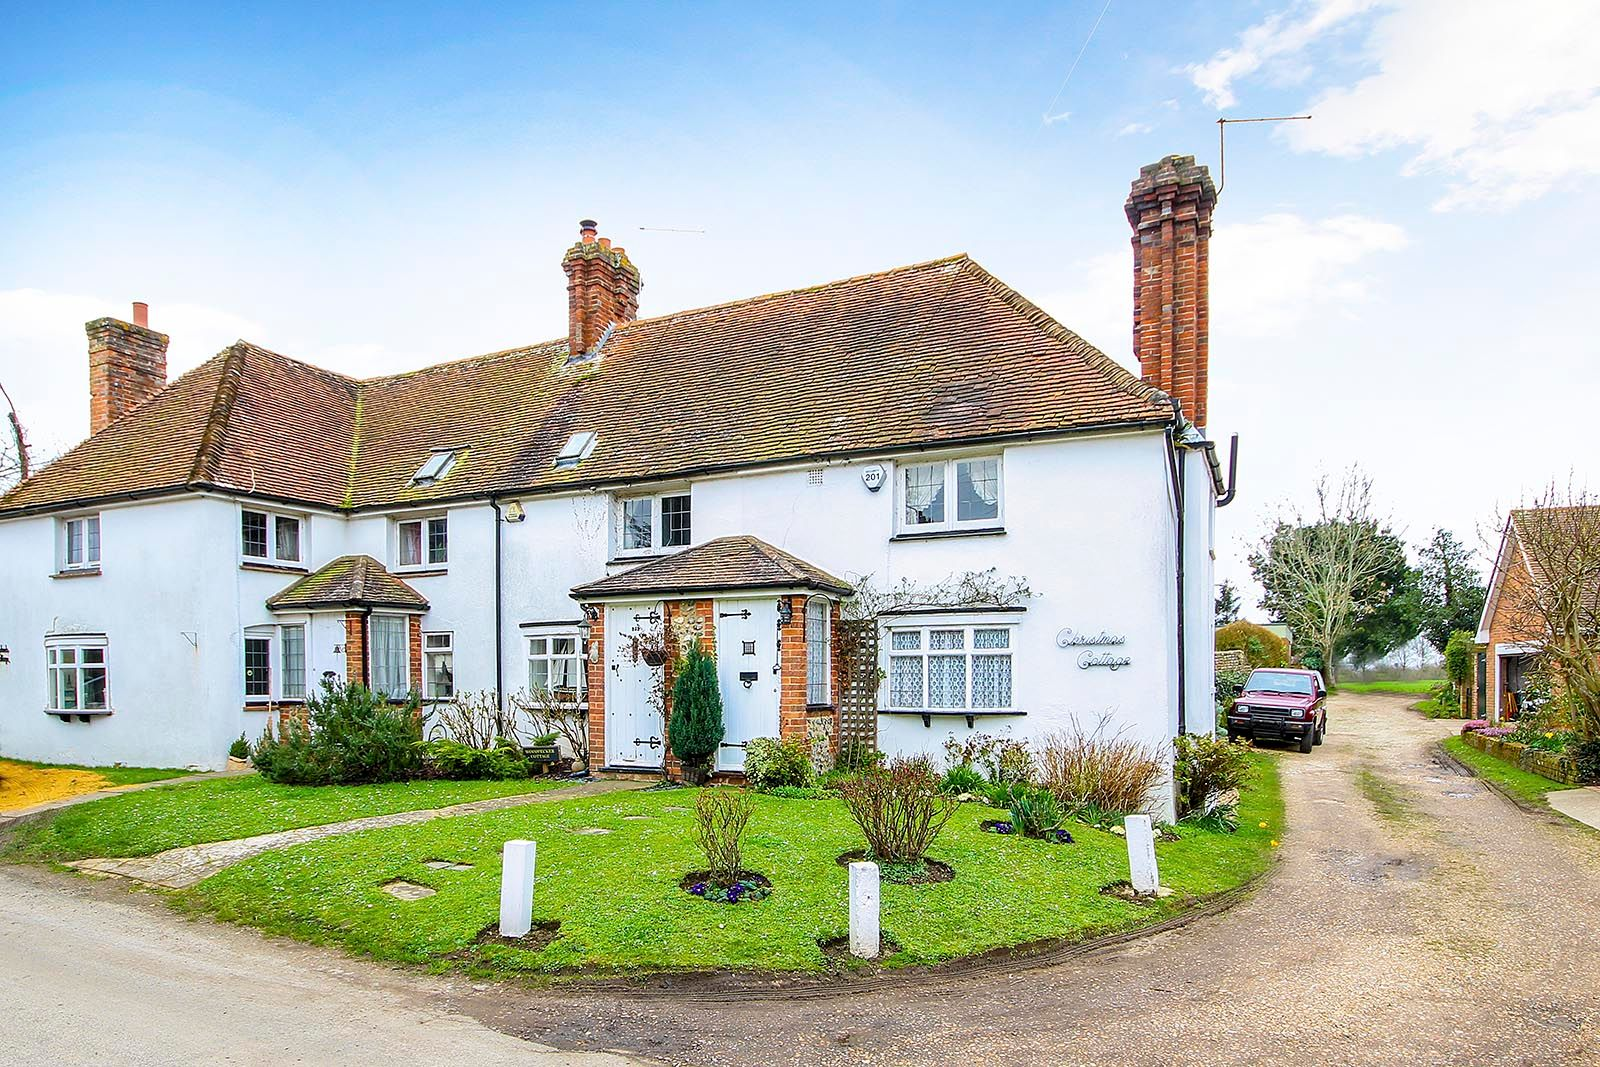 2 bed House for sale in Arundel - Main (Property Image 0)